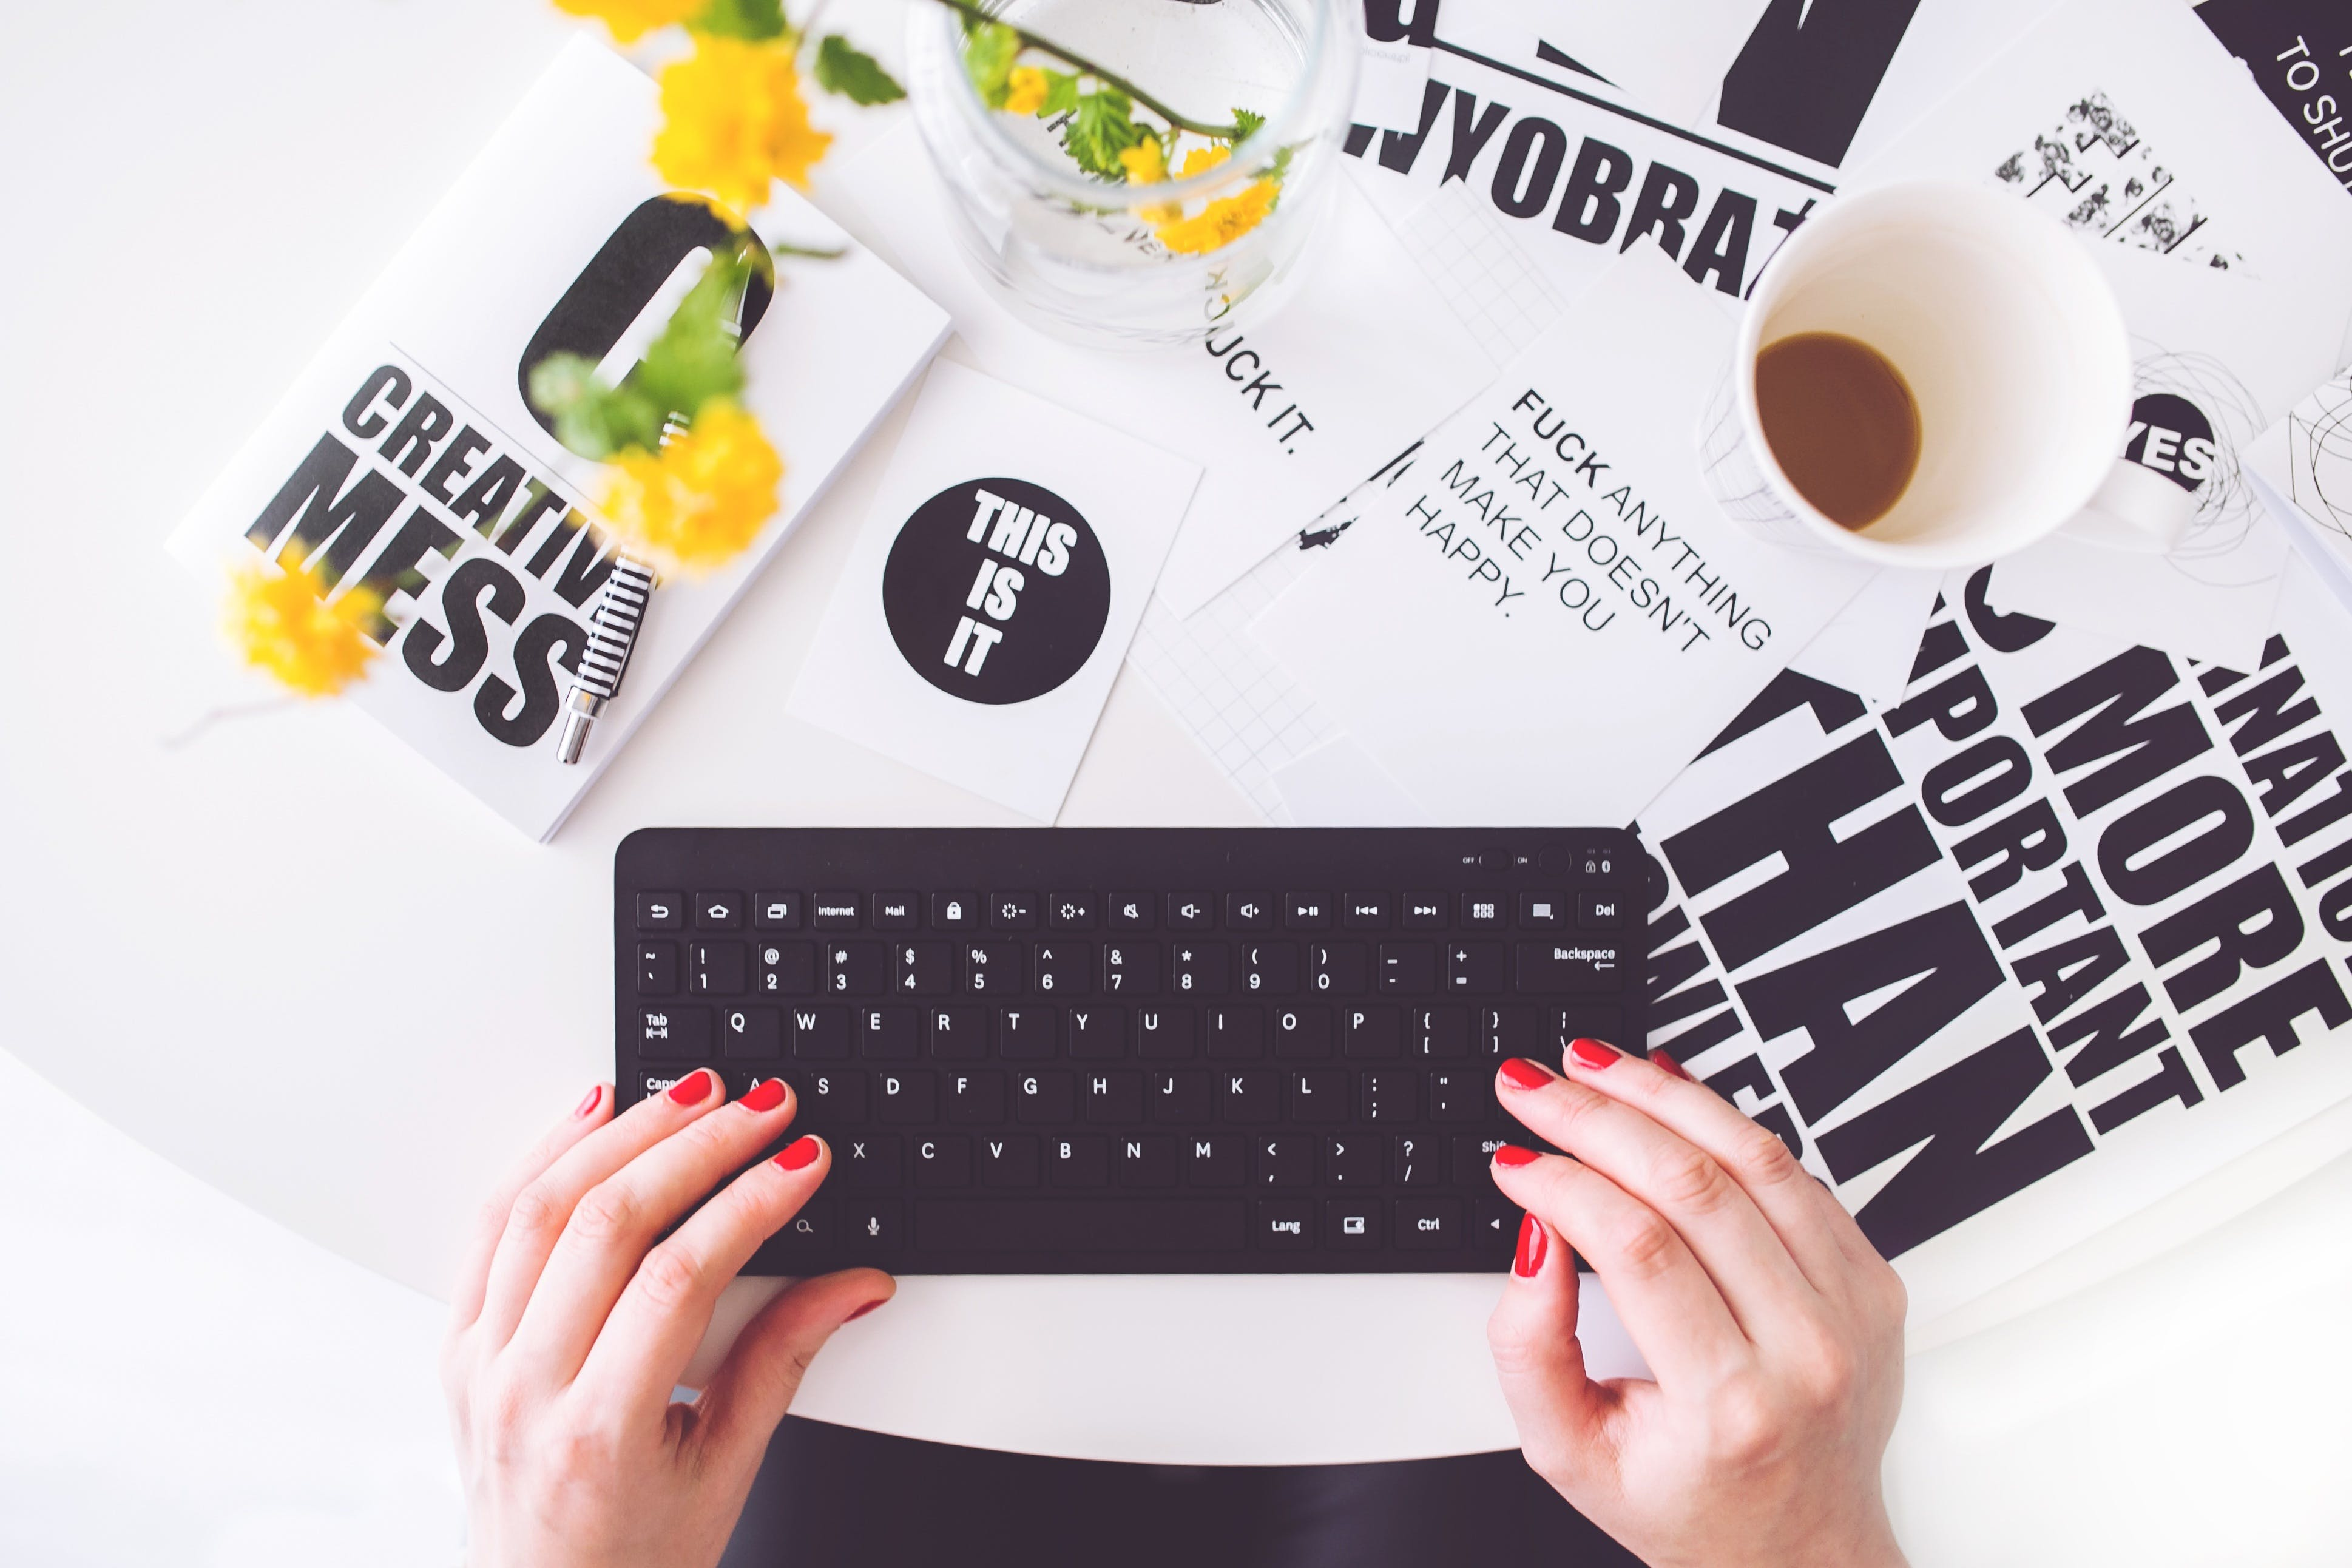 Girl with red nail polishing typing on a keyboard, on a table with a bunch of paper with quotes